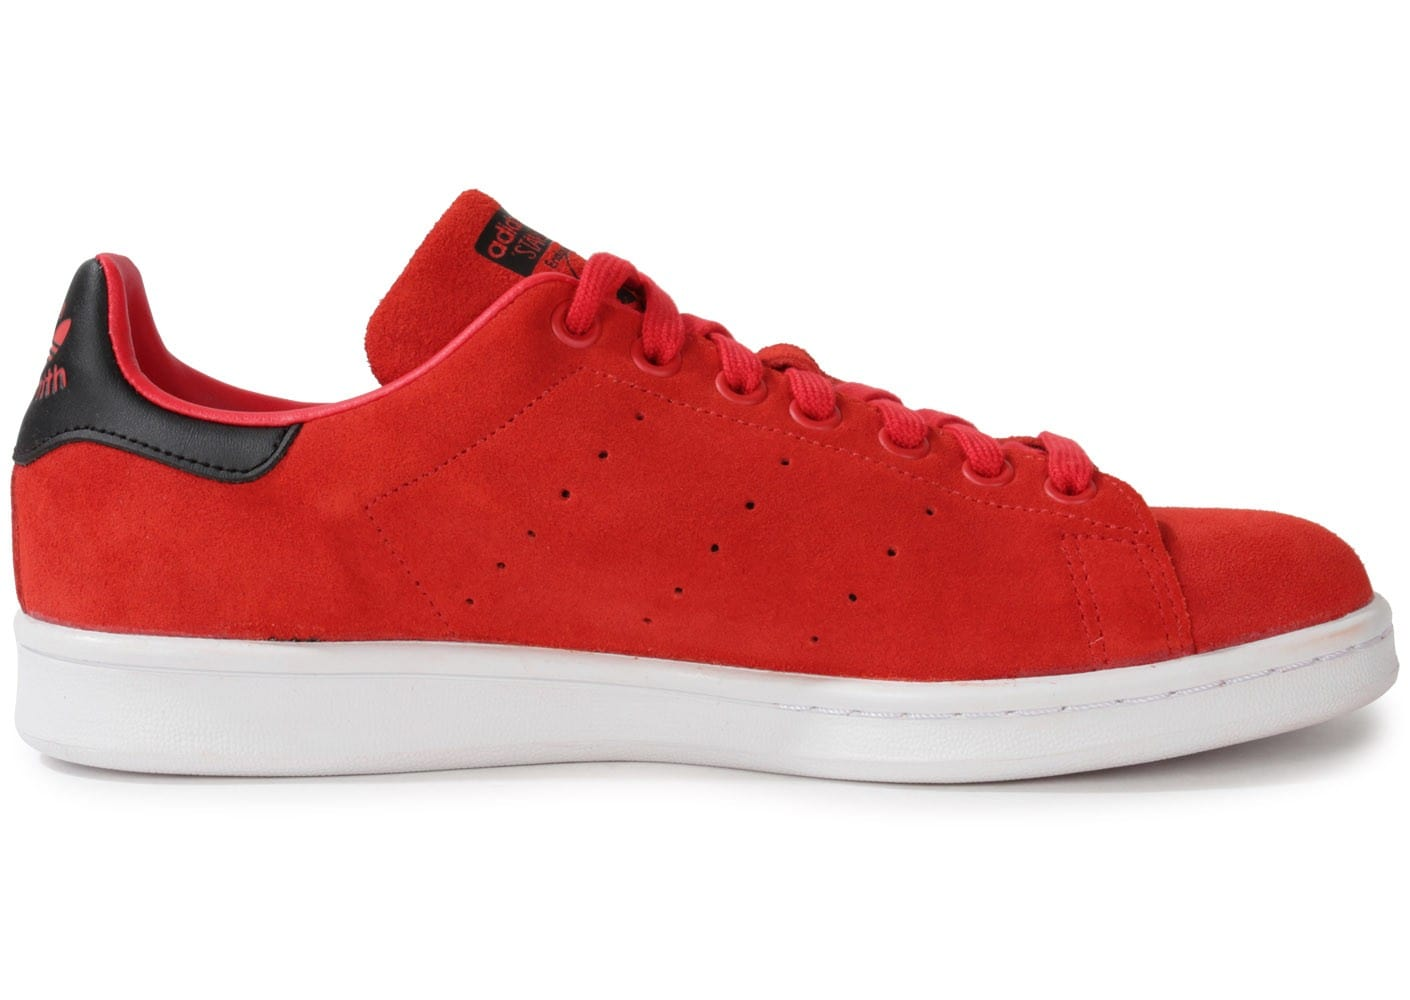 adidas stan smith suede rouge chaussures homme chausport. Black Bedroom Furniture Sets. Home Design Ideas